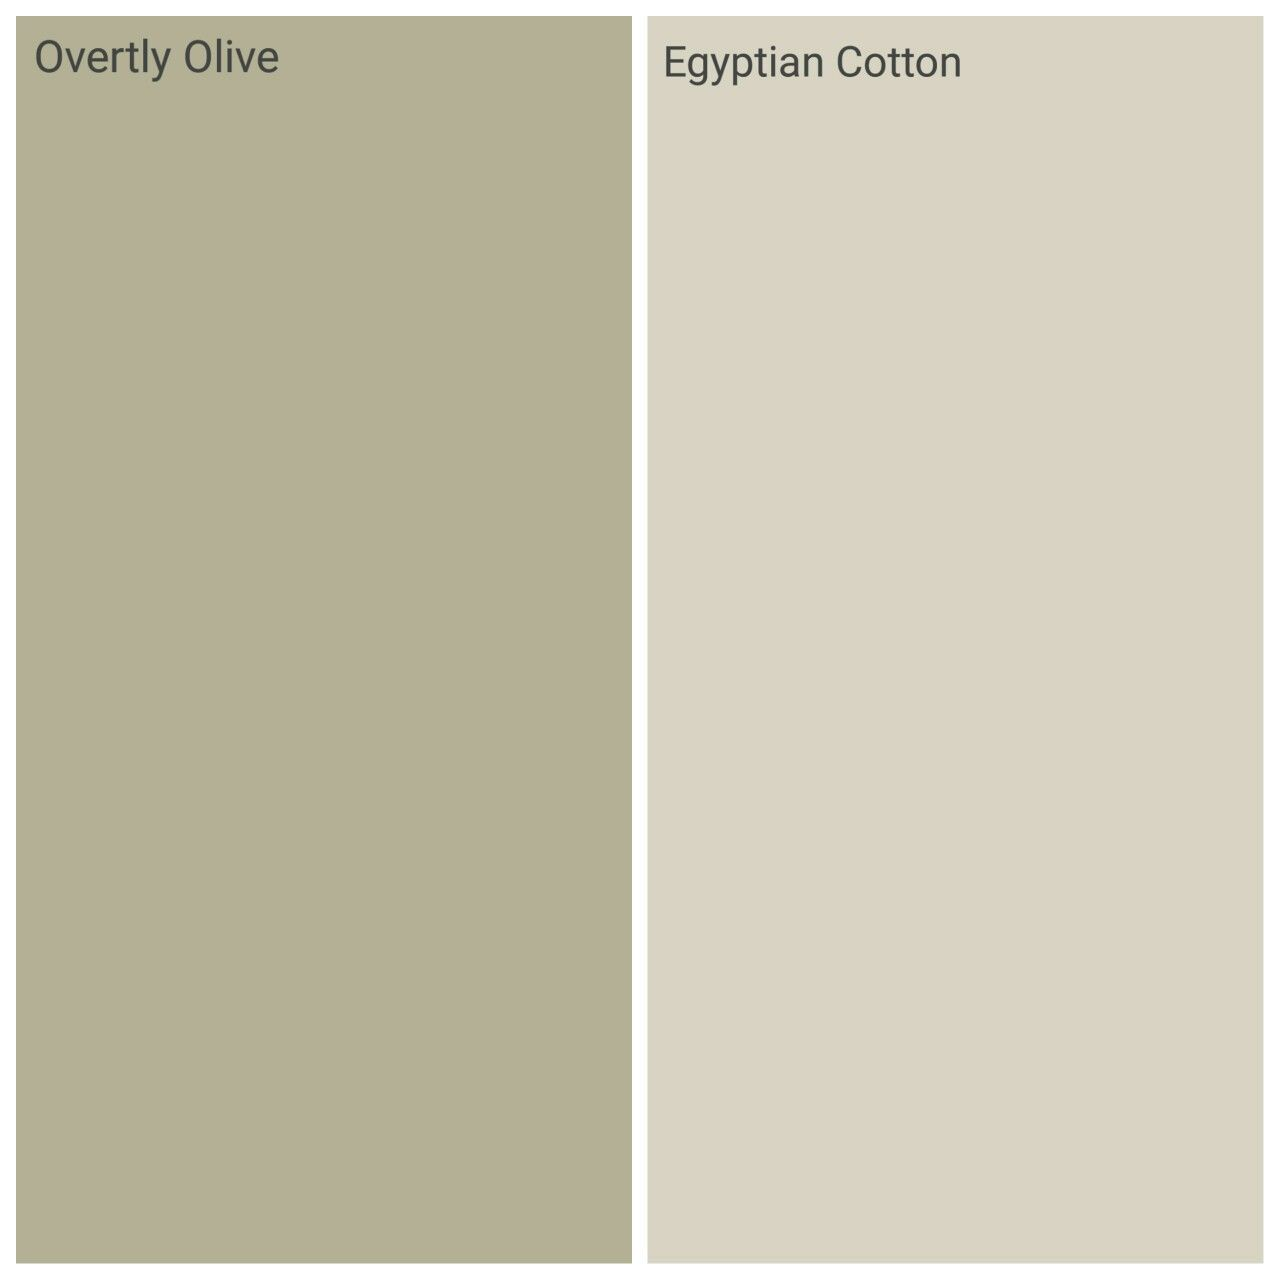 Dulux overtly olive and egyptian cotton, kichen family room! | Идеи ...